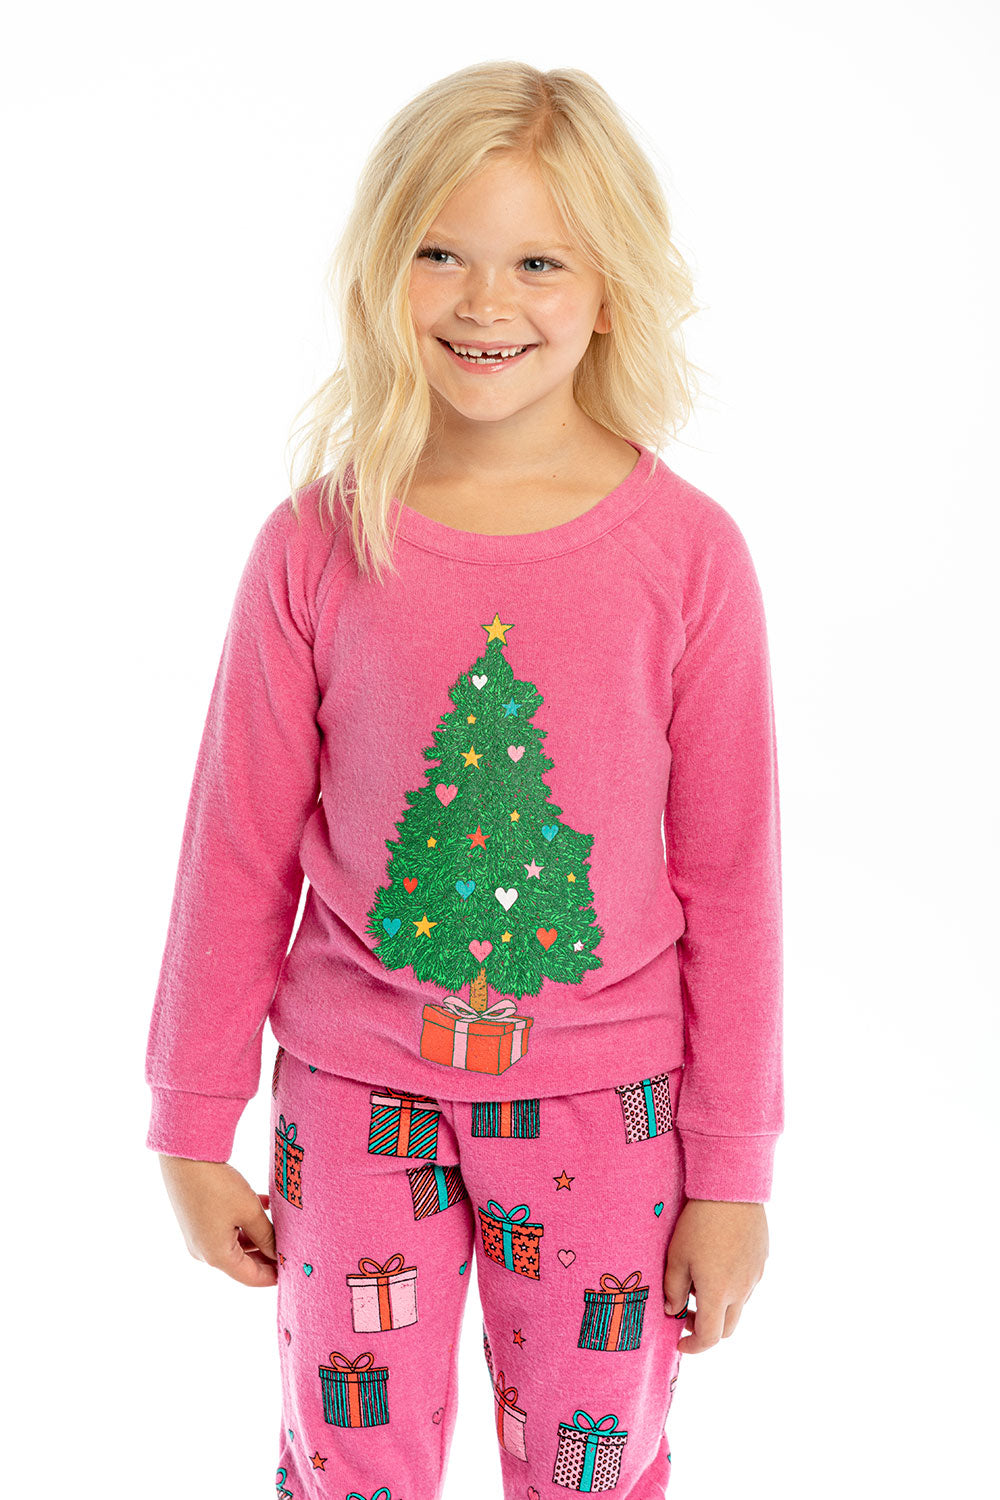 Christmas Tree GIRLS chaserbrand4.myshopify.com